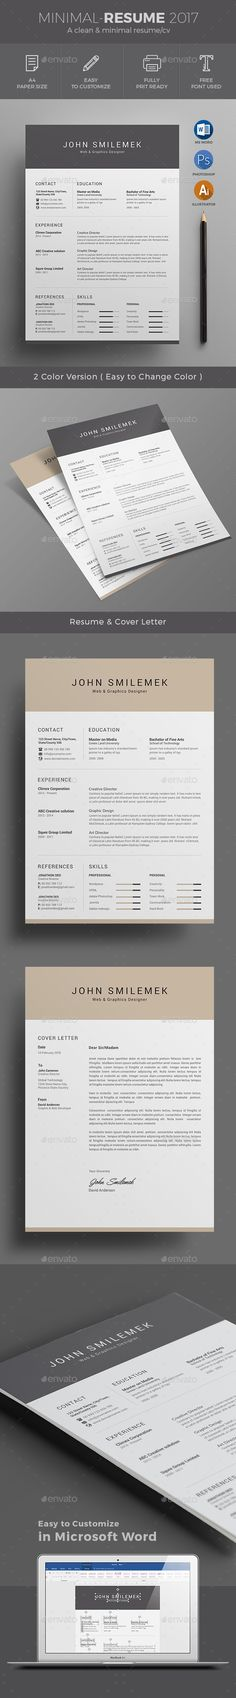 Resume Word Resume template download, Modern resume template and - microsoft word resume templates free